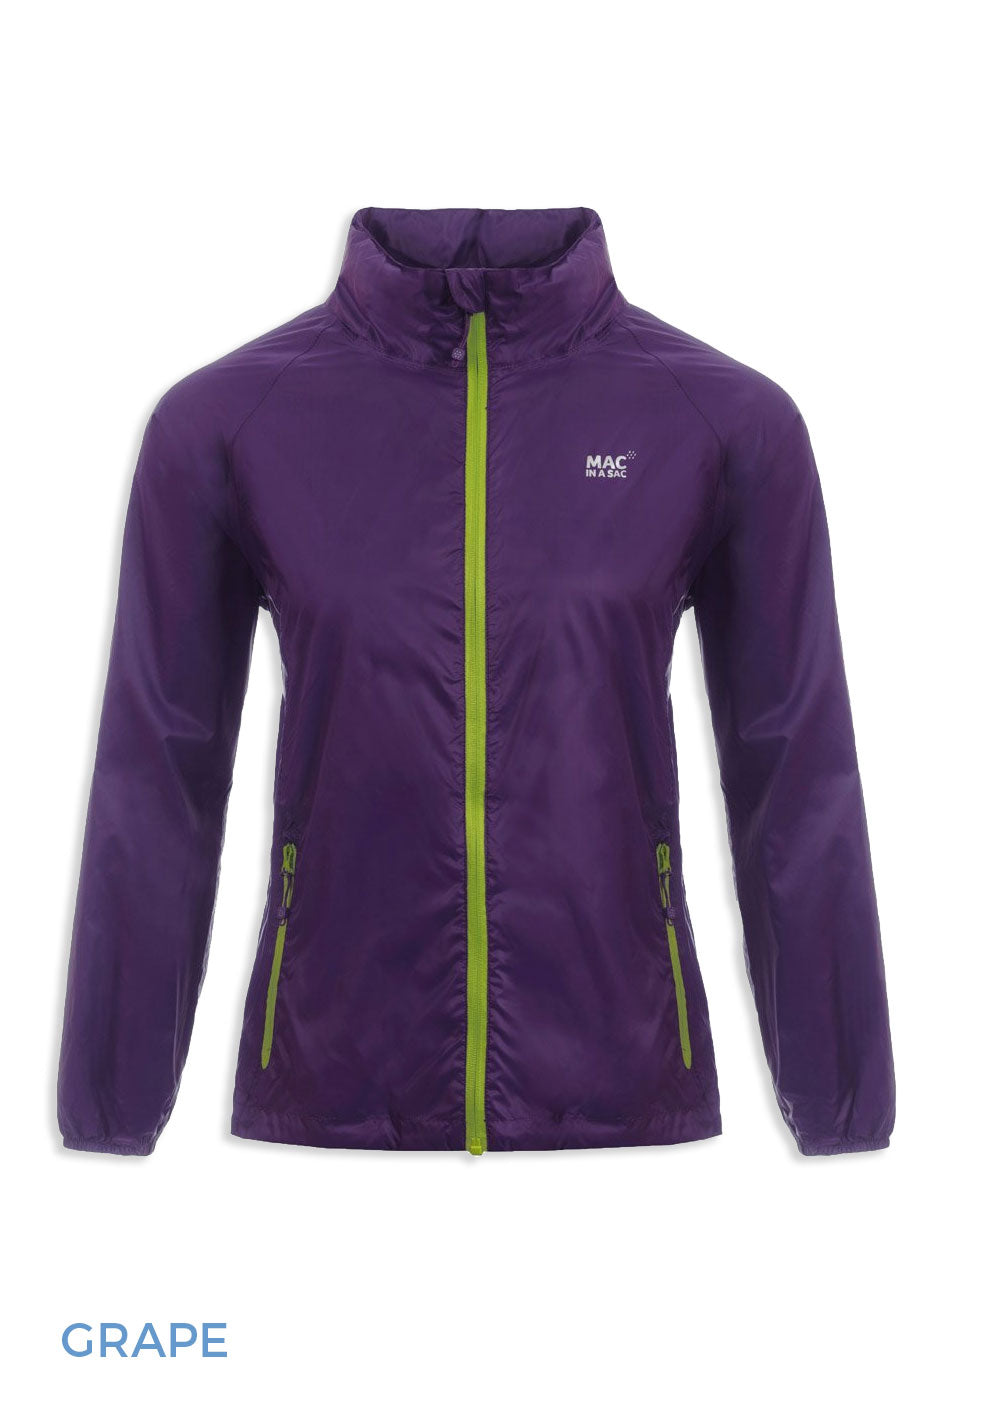 Grape Packaway Waterproof Jacket by Lighthouse